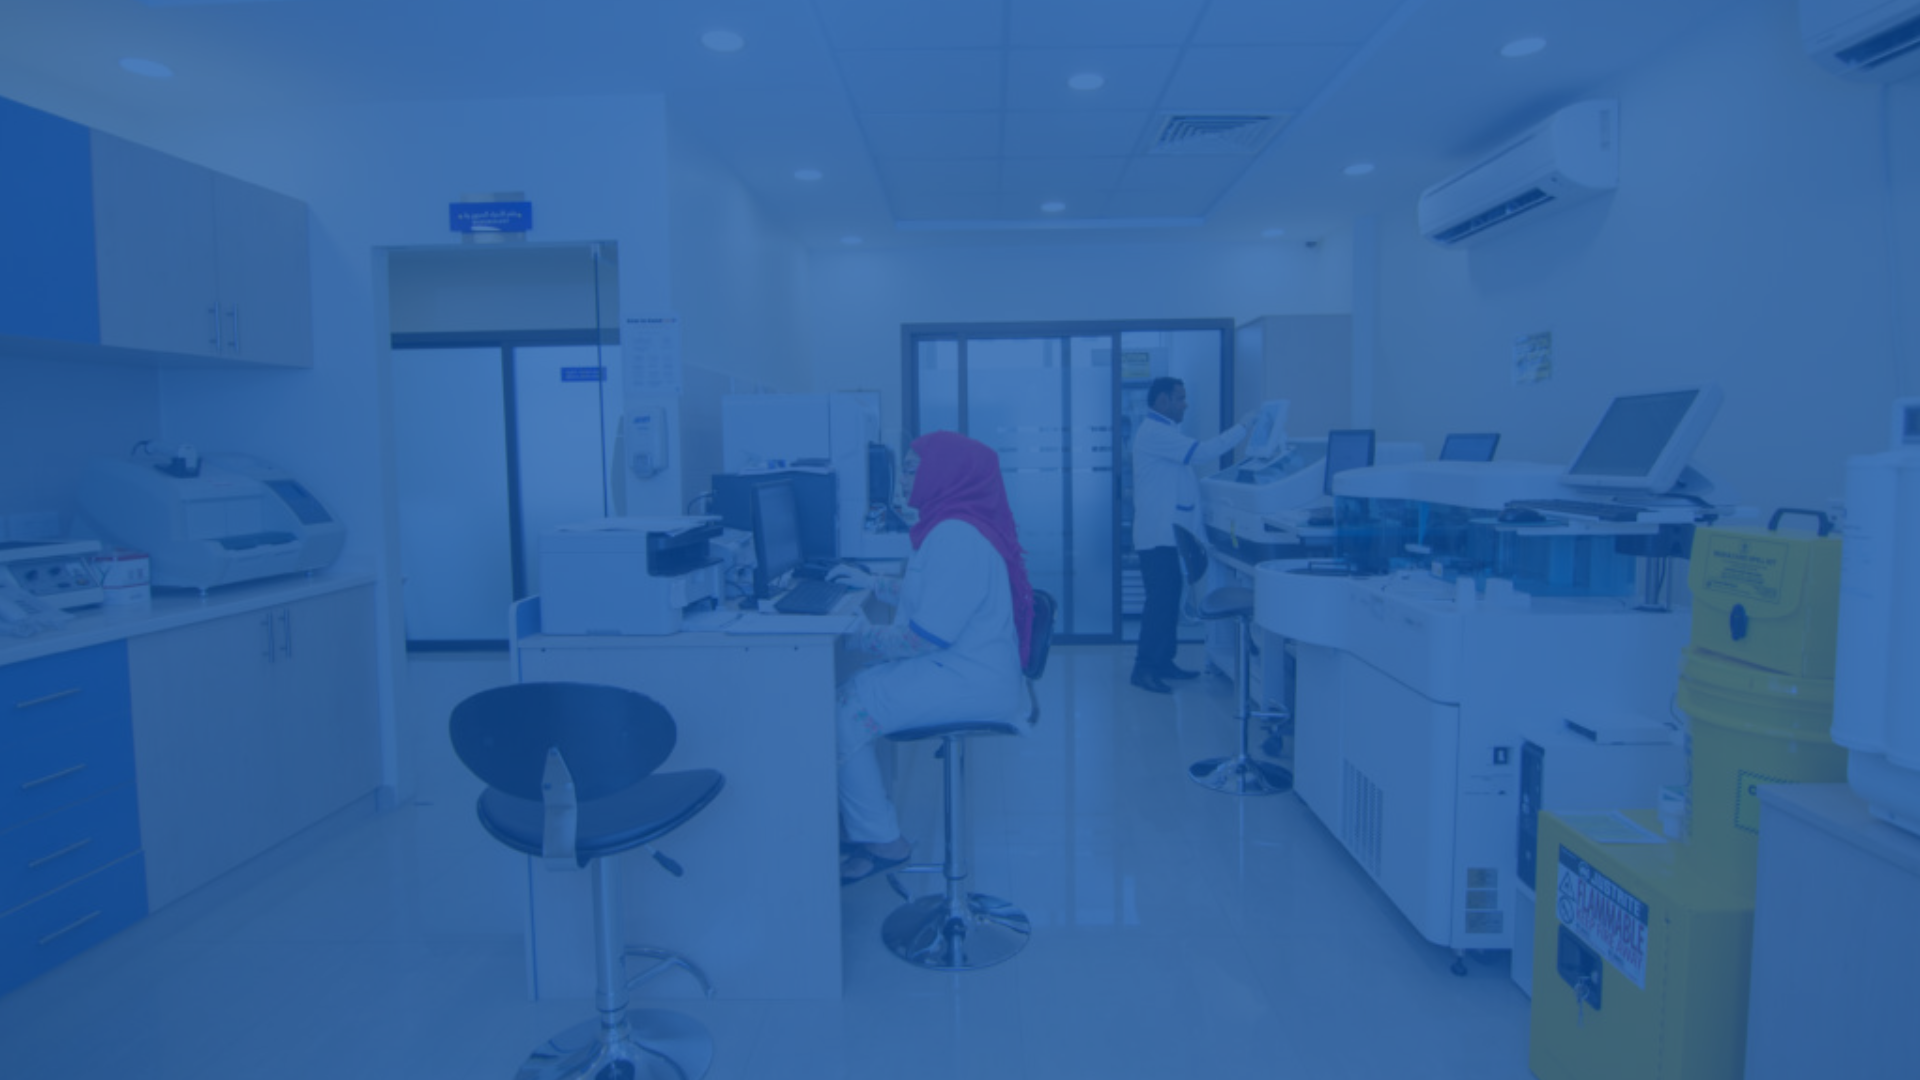 PH DIAGNOSTICS LABORATORY